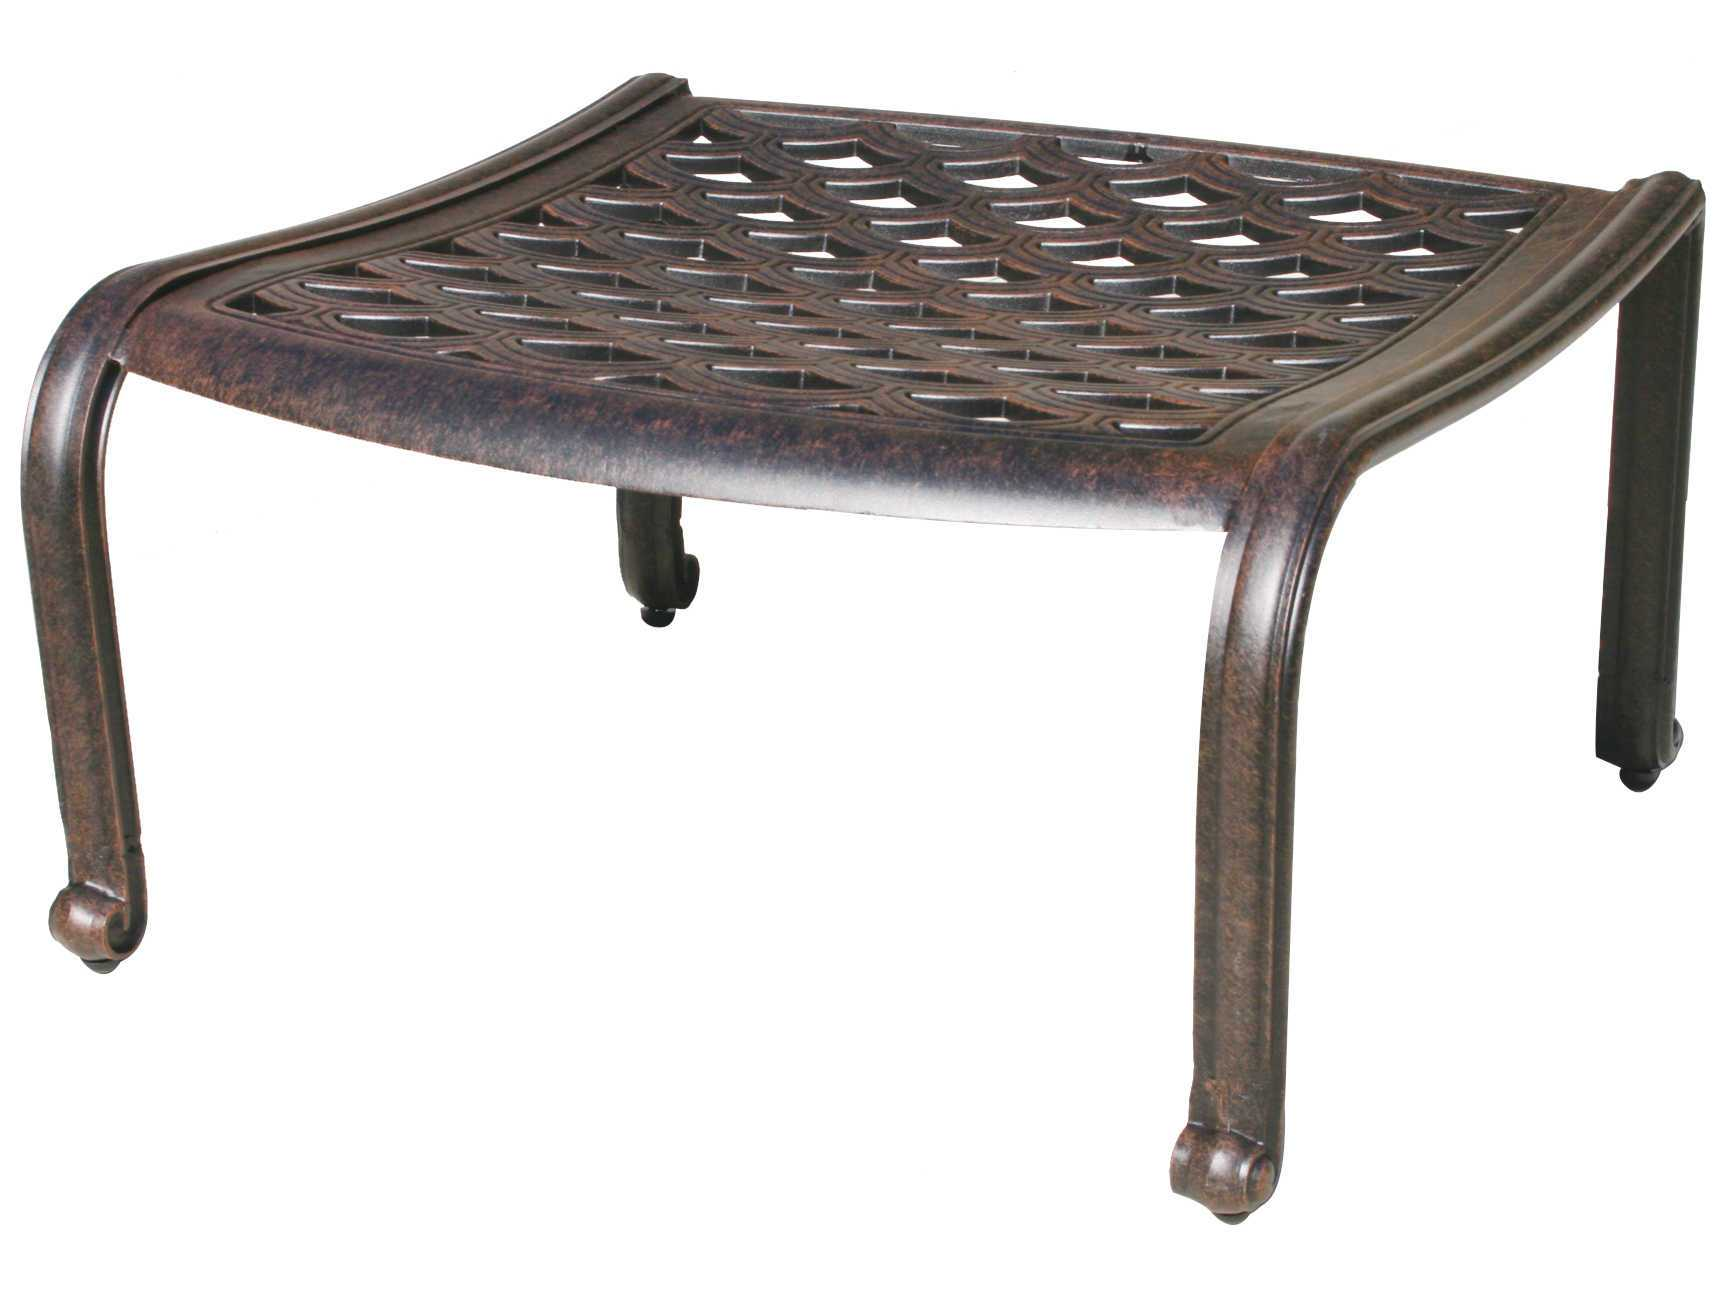 Wonderful image of Darlee Outdoor Living Catalina Cast Aluminum Ottoman DL806 11 with #695950 color and 1720x1290 pixels